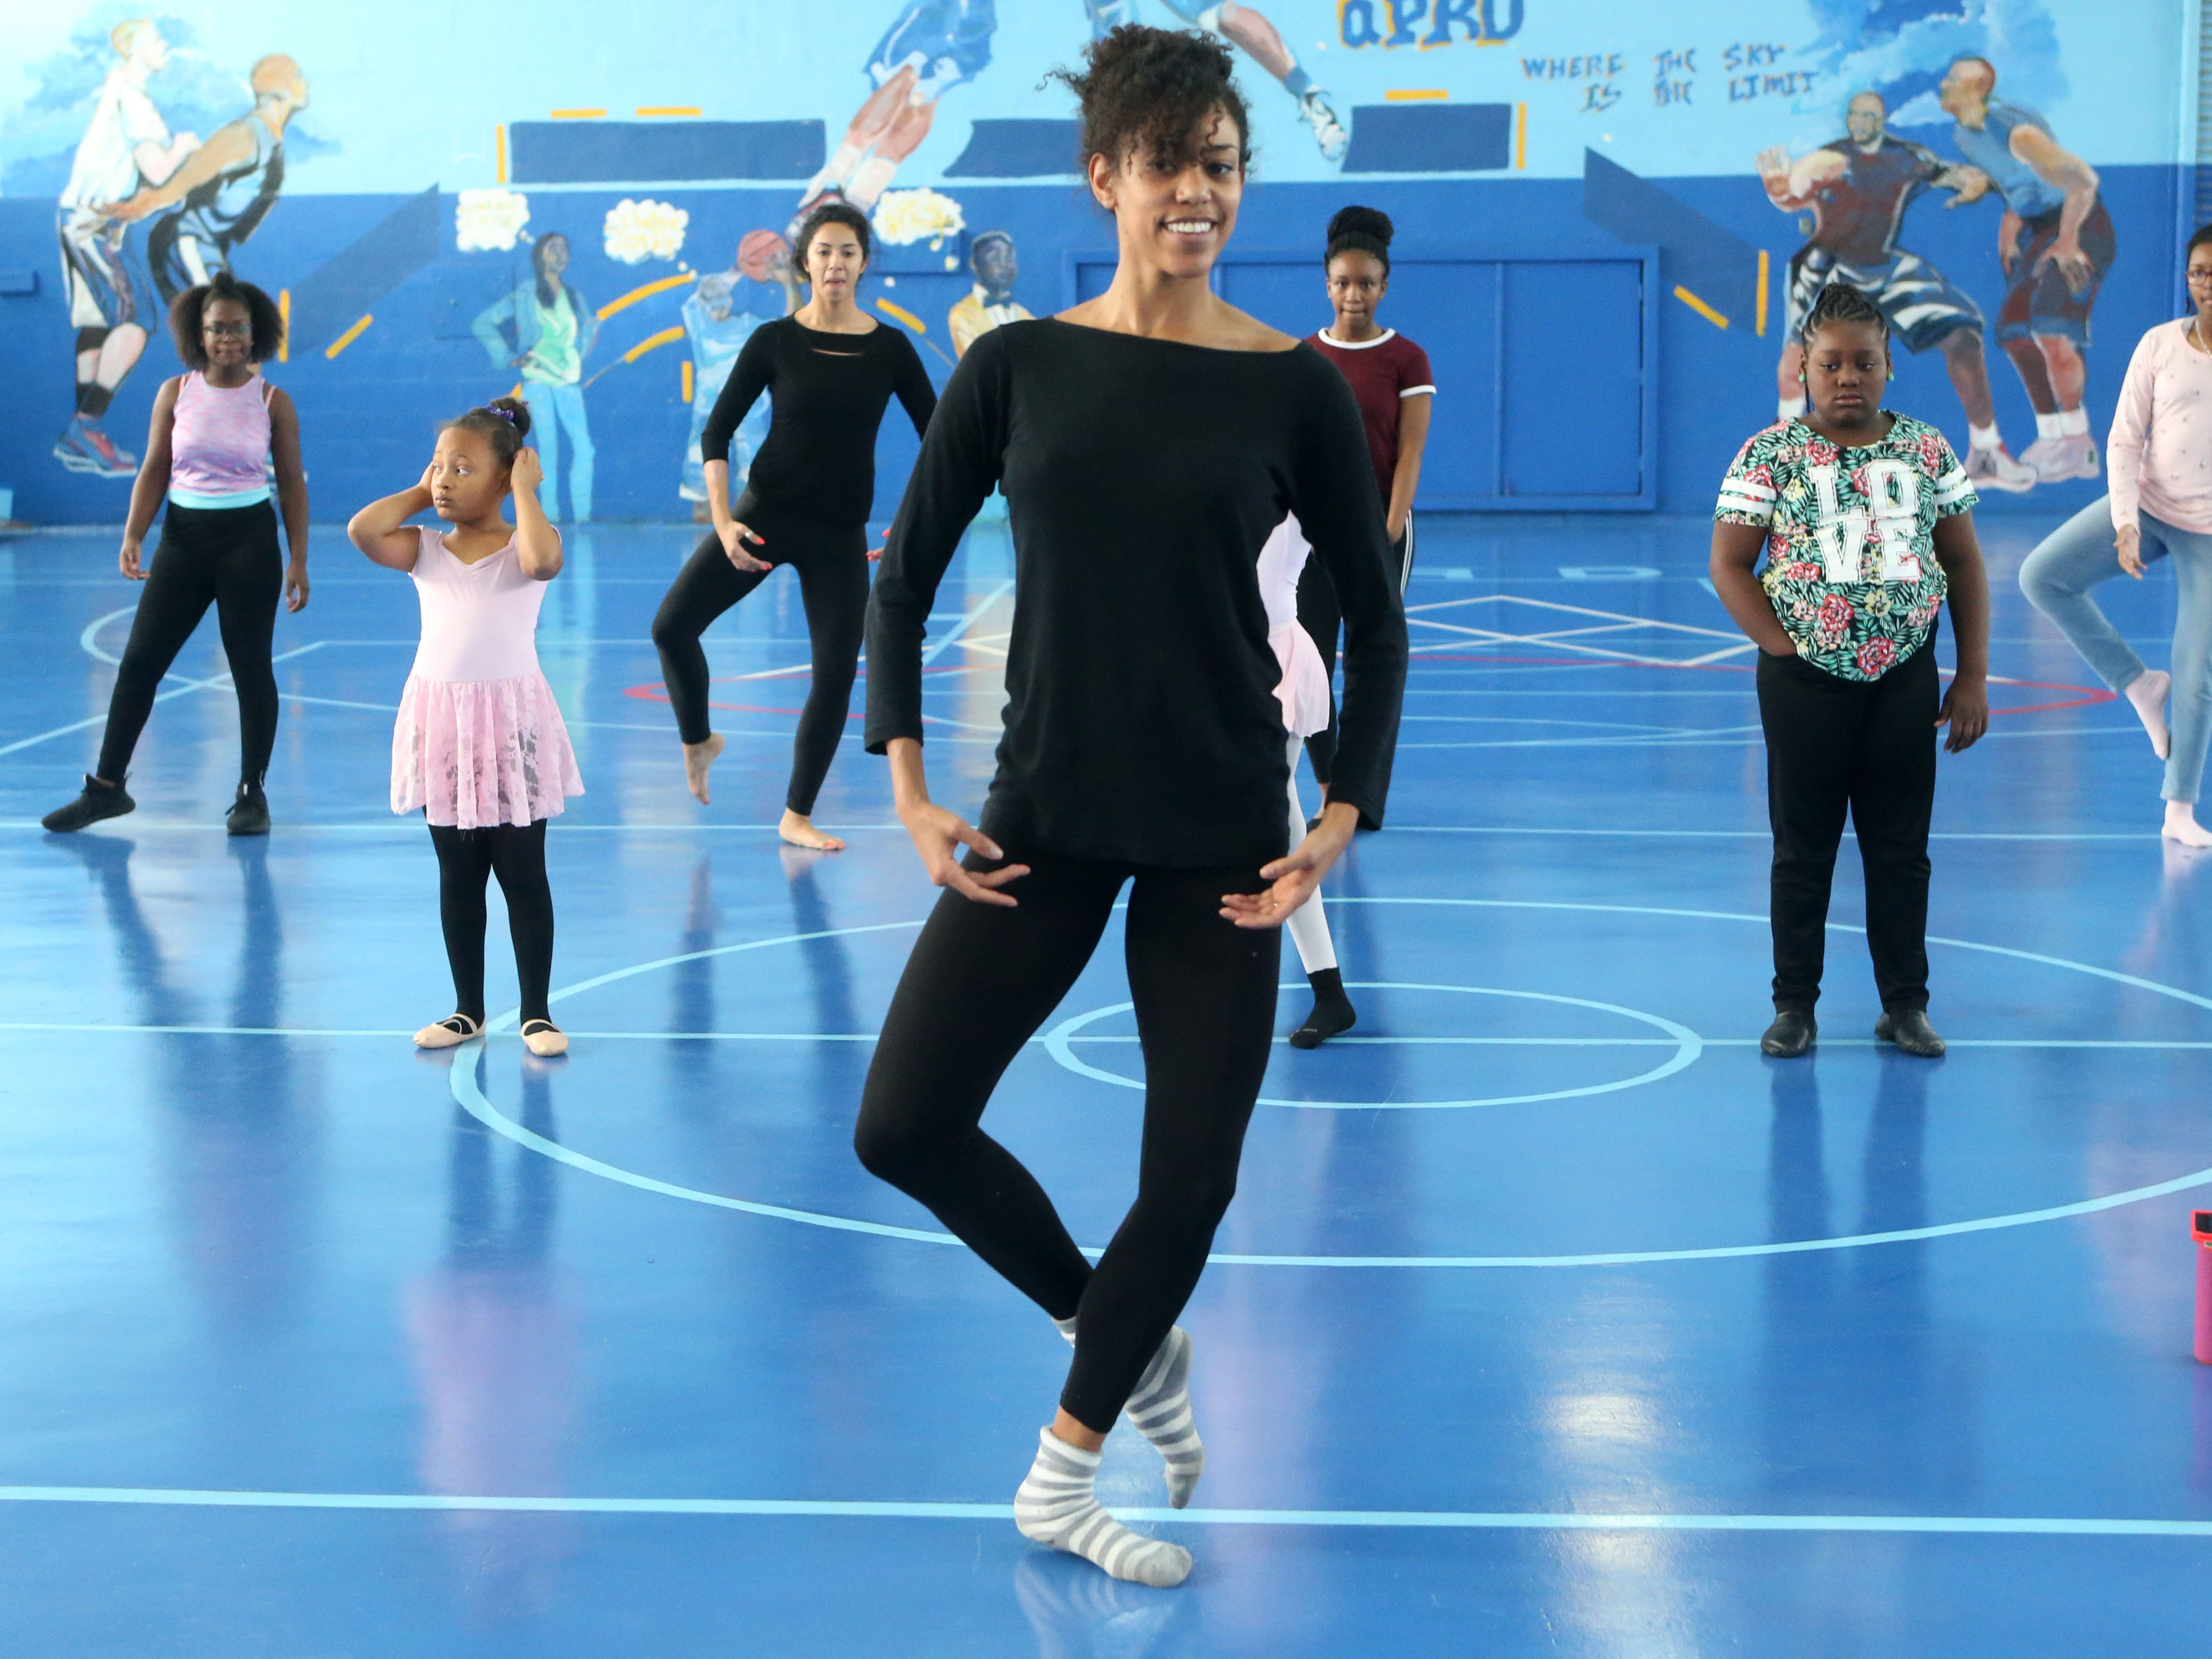 Dance class in Quincy, Fla. taught by Lindsey Croop, professional dancer